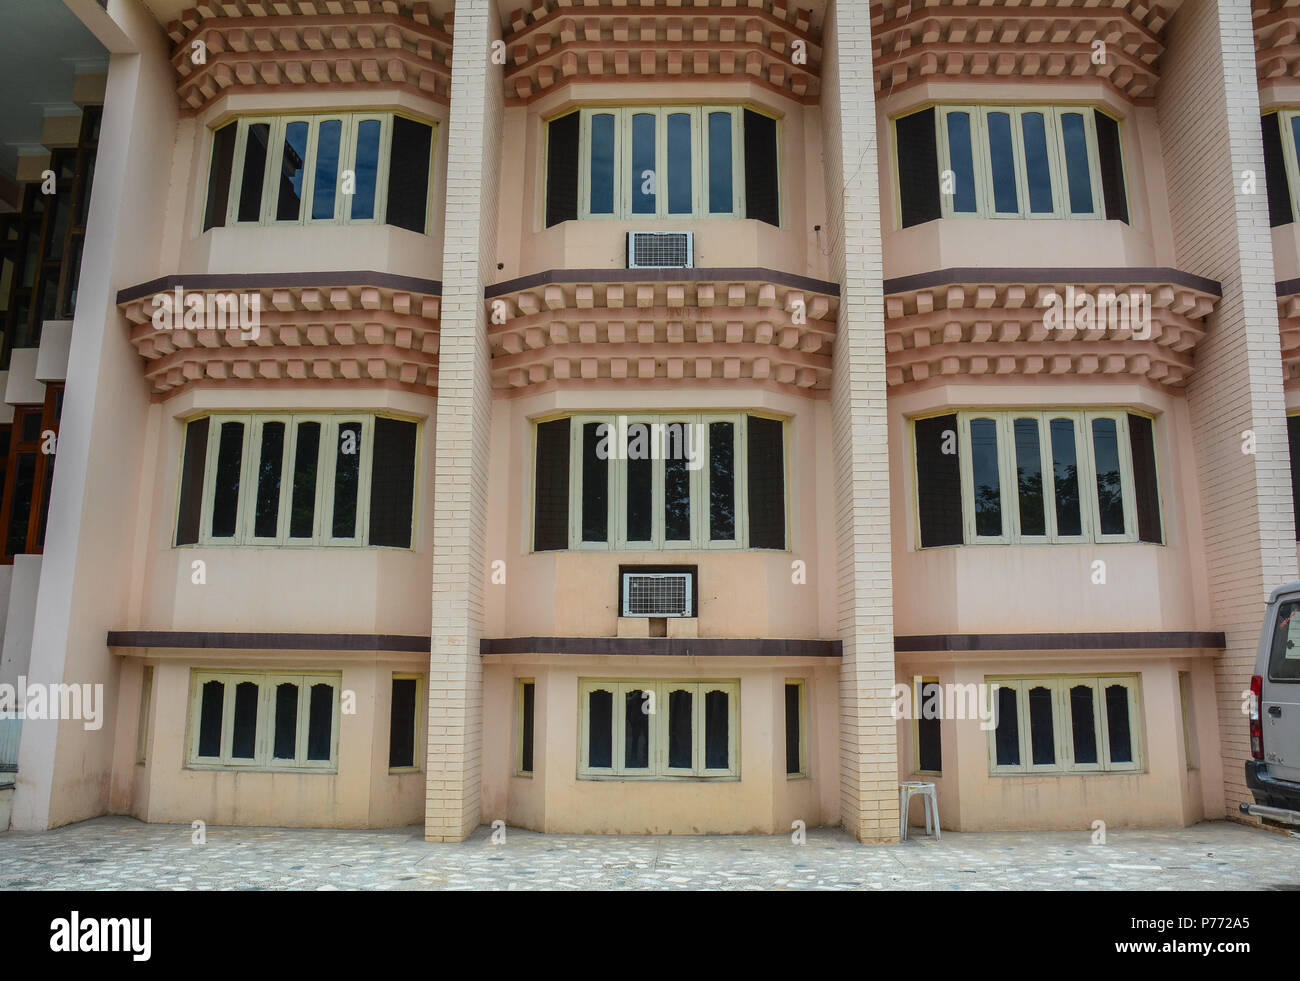 Bodhgaya, India - July 9, 2015. A modern building in Bodhgaya, India. Bodhgaya is the most revered of all Buddhist sacred sites. - Stock Image